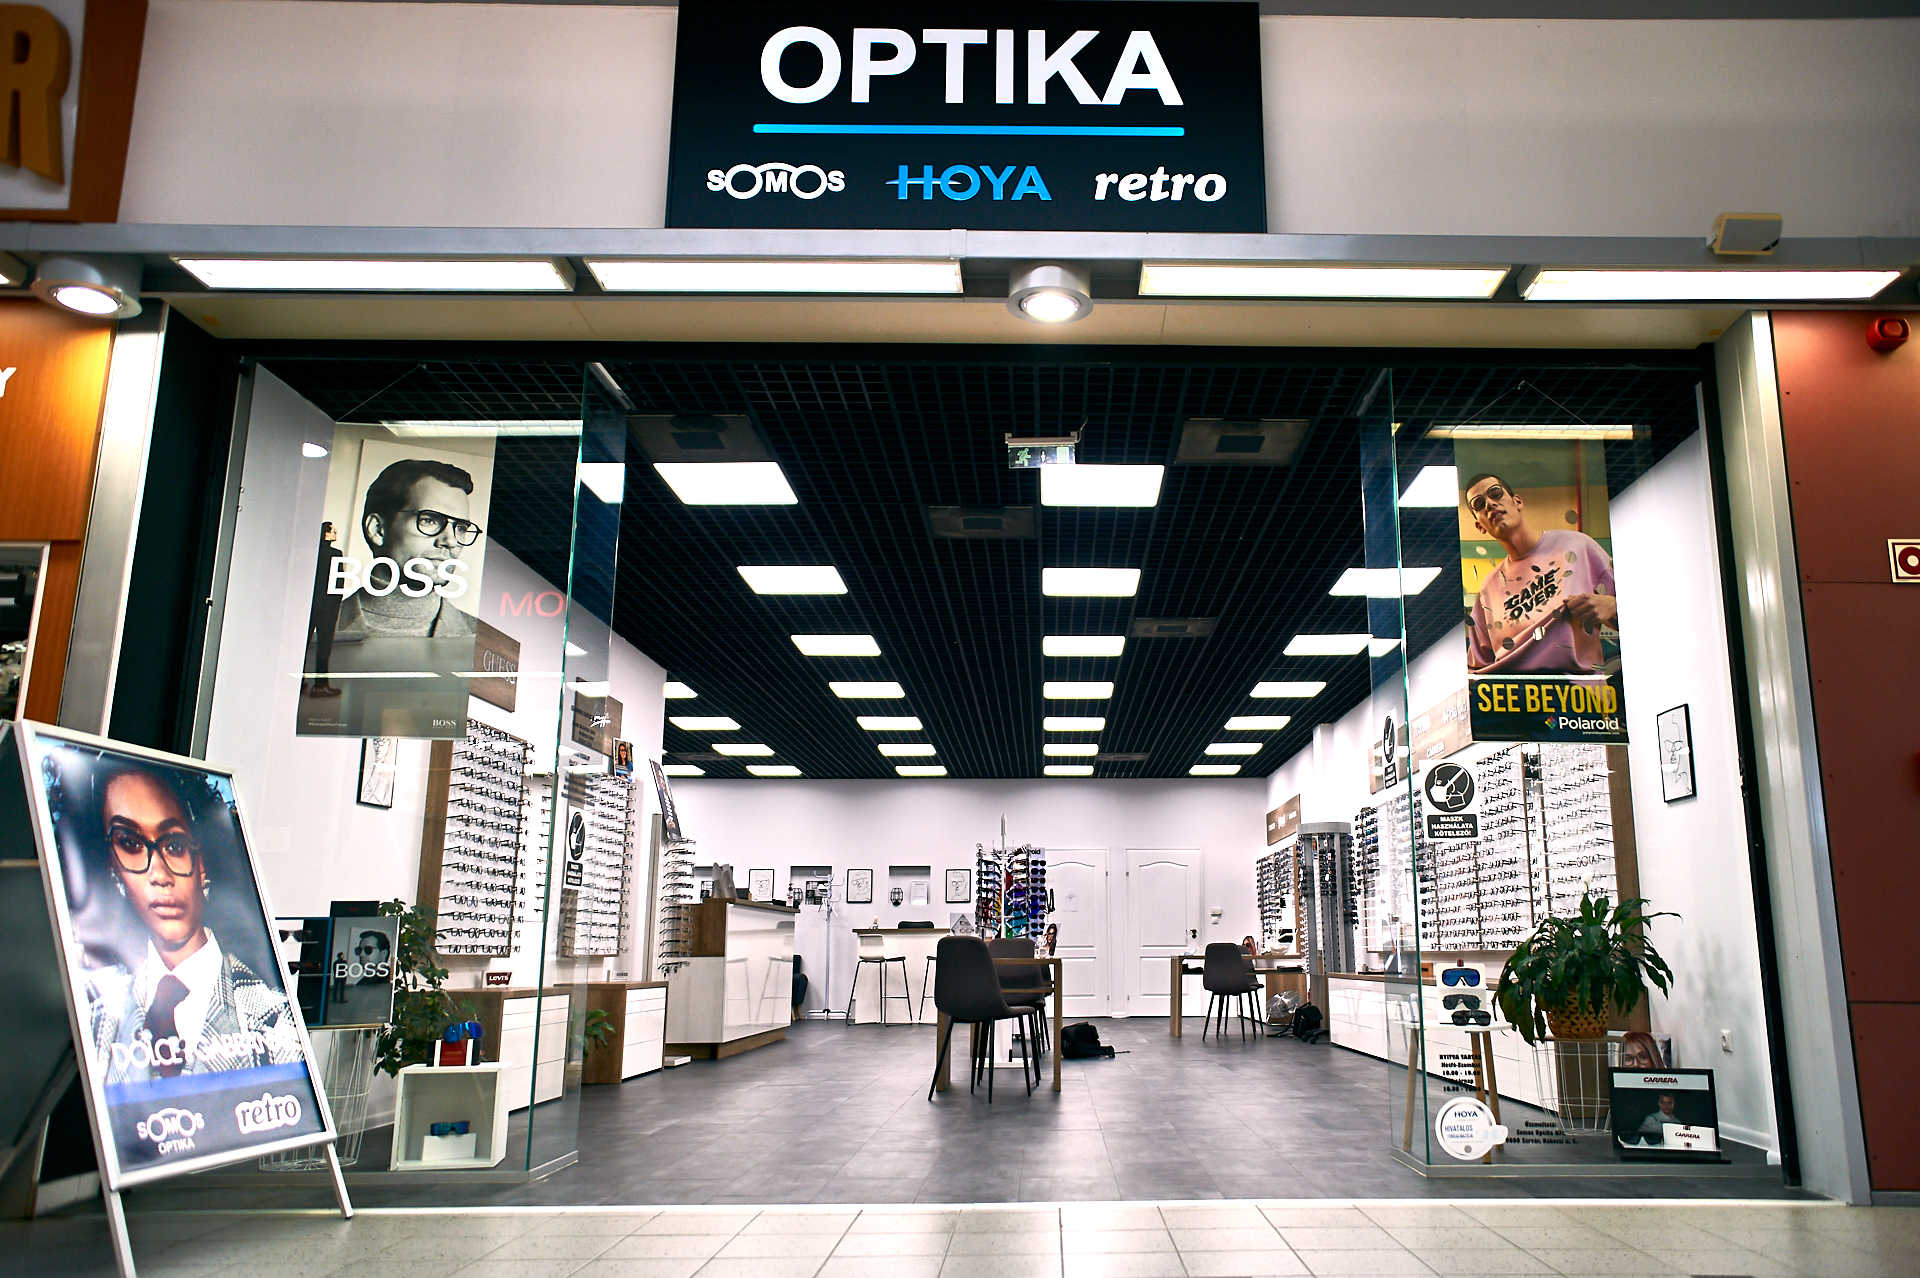 Somos Retro optika